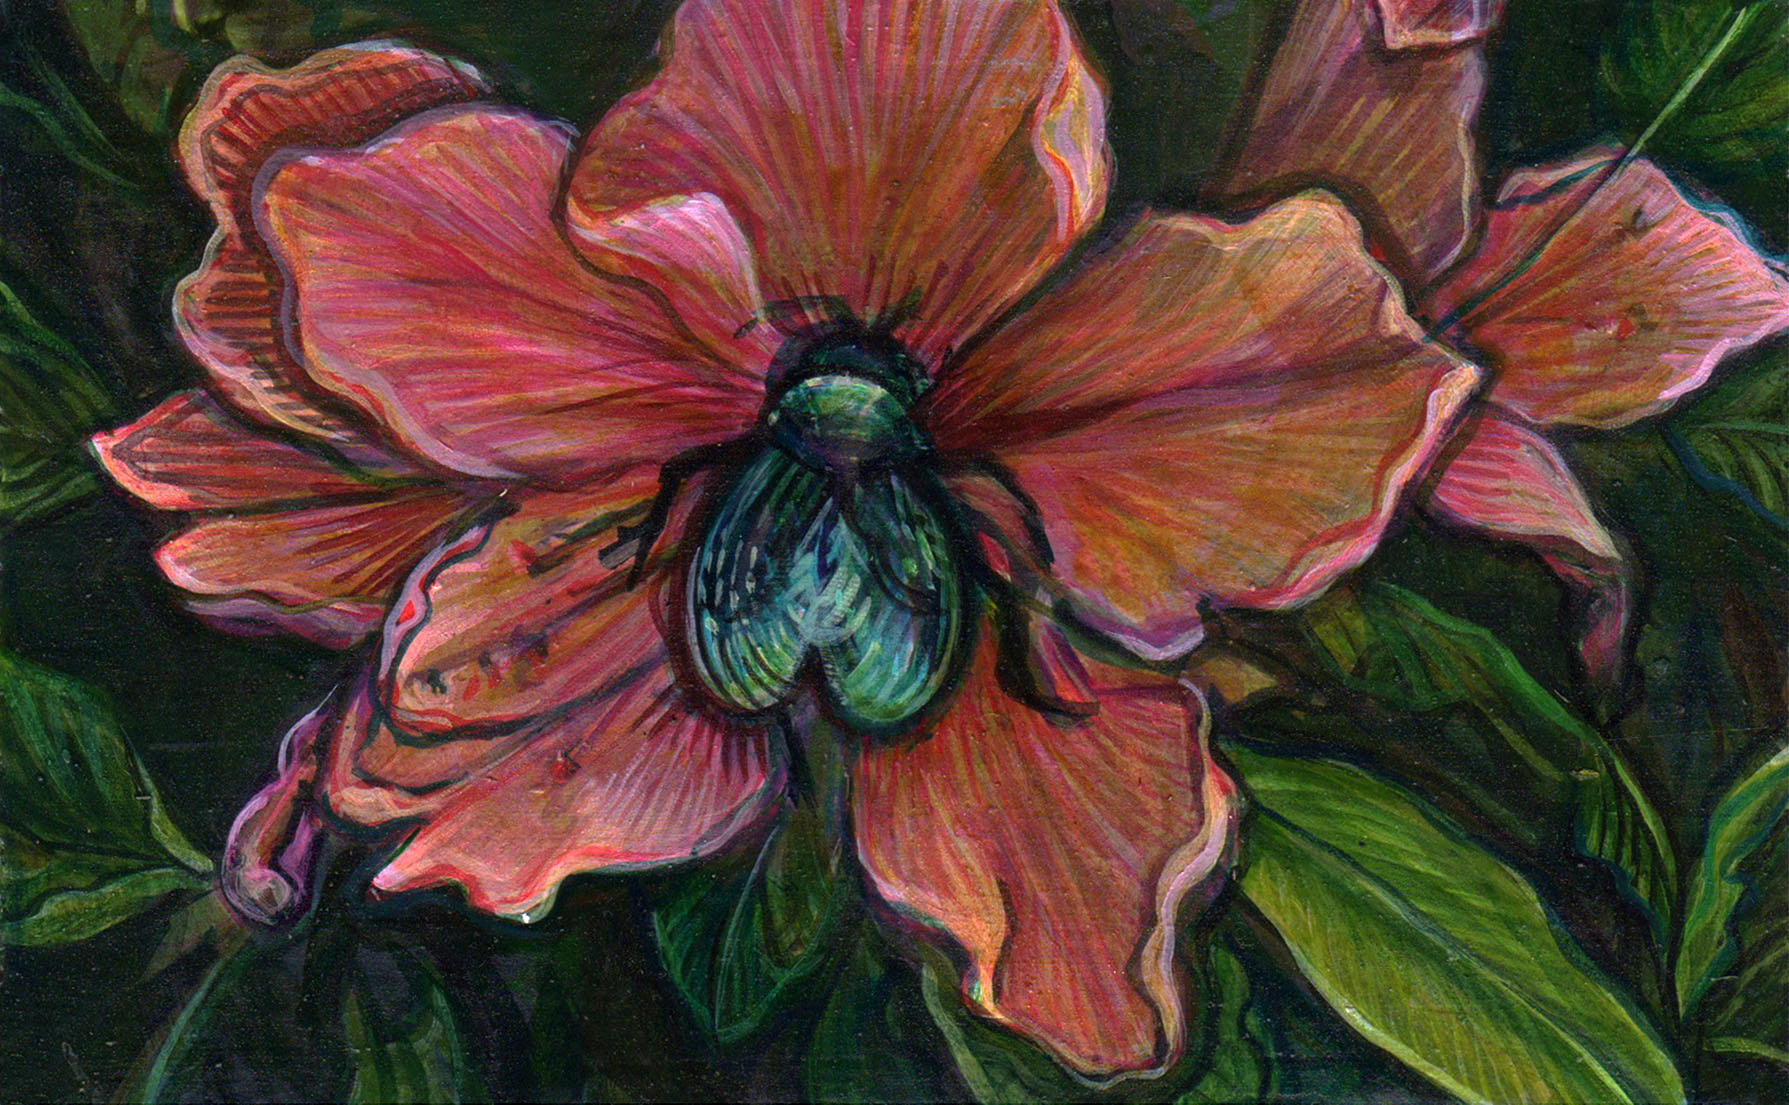 "katherine sandoz, (suwi1516) azalea, 3 5/8"" x 5 3/4"", water-based media on panel, 2015-2016"